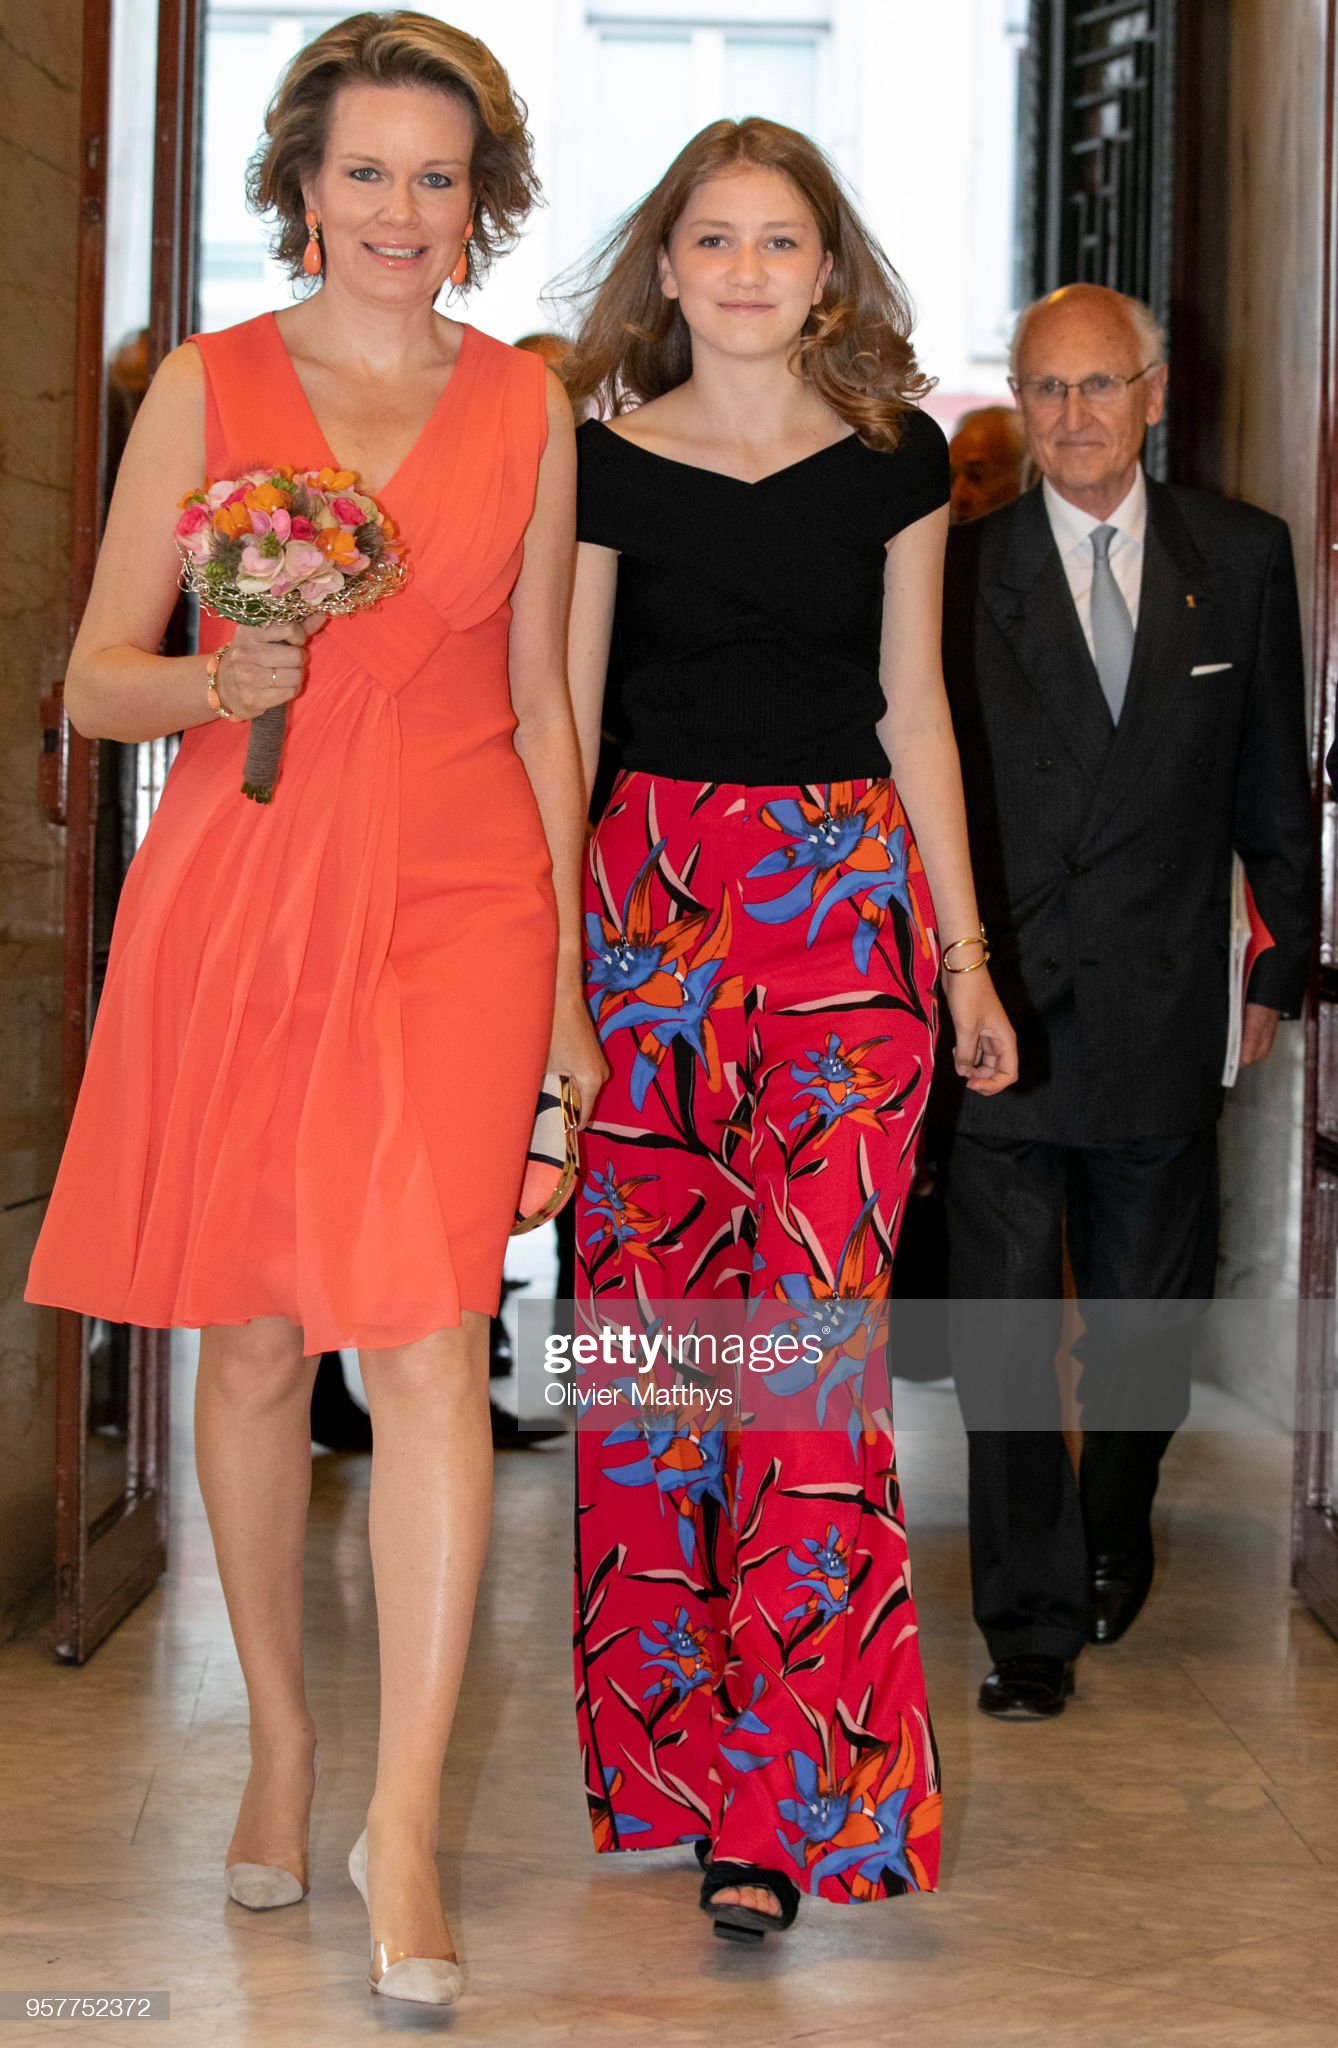 Вечерние наряды Королевы Матильды King Philippe Ff Belgium And Queen Mathilde Attend The Queen Elisabeth Contest Finals At Bozar In Brussels : News Photo